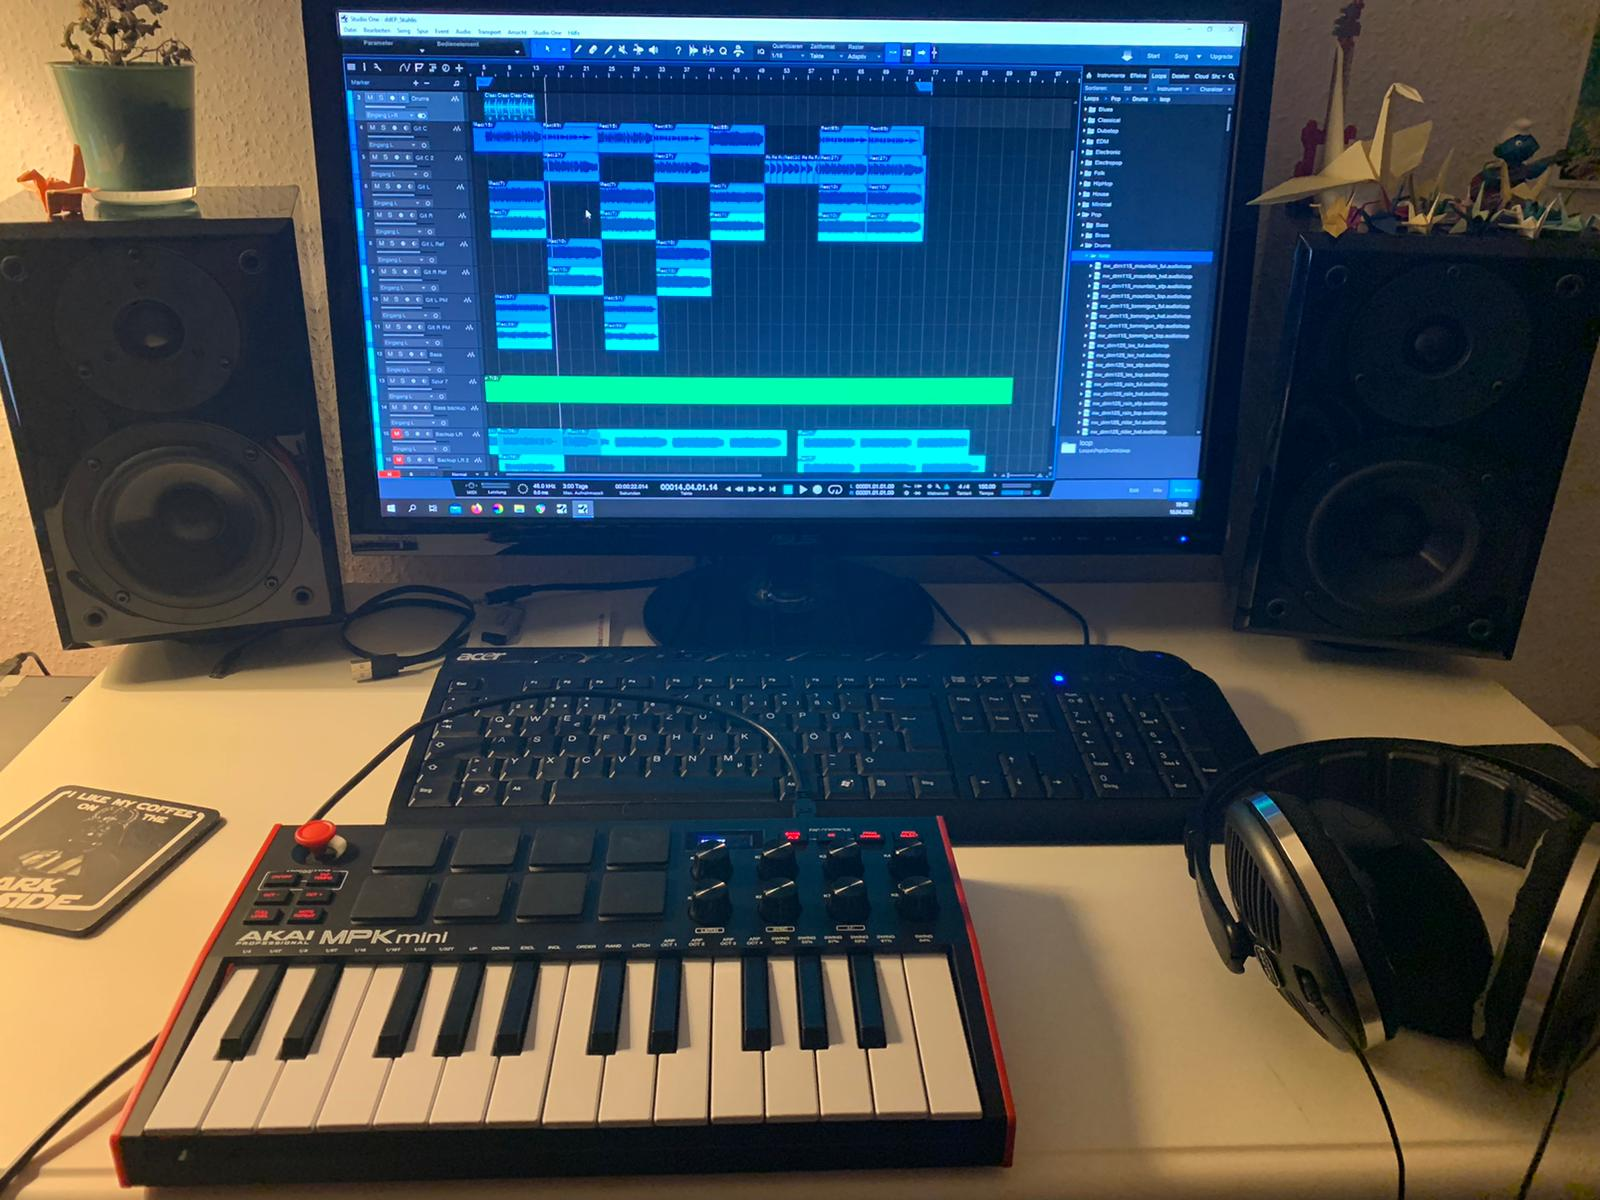 Workstation with MIDI Keyboard for Home Recording